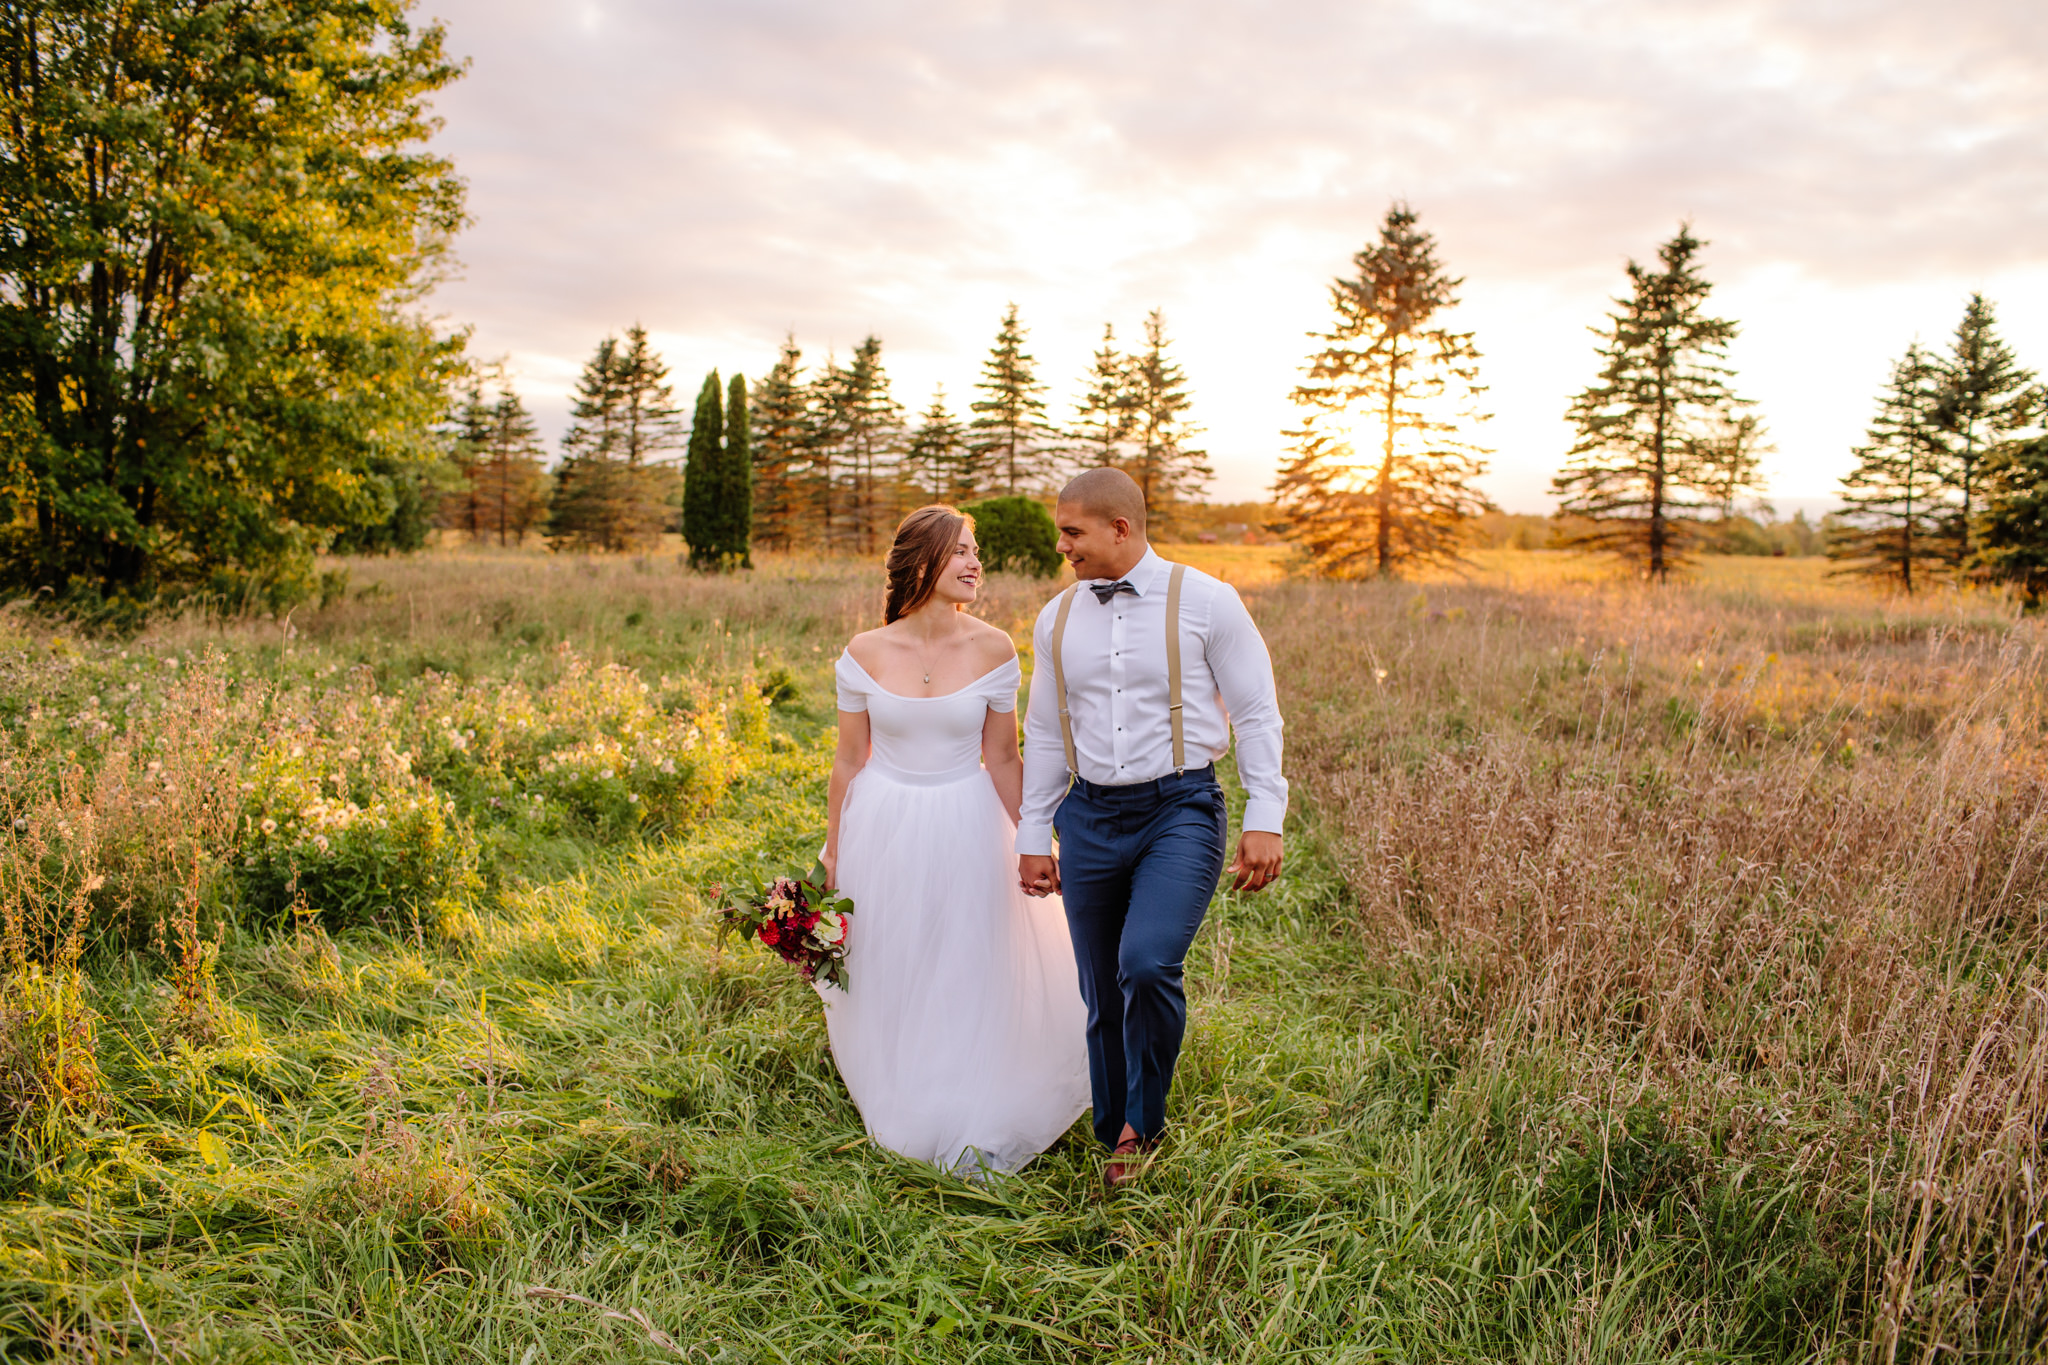 bride and groom in a field celebrating their lindsay wedding